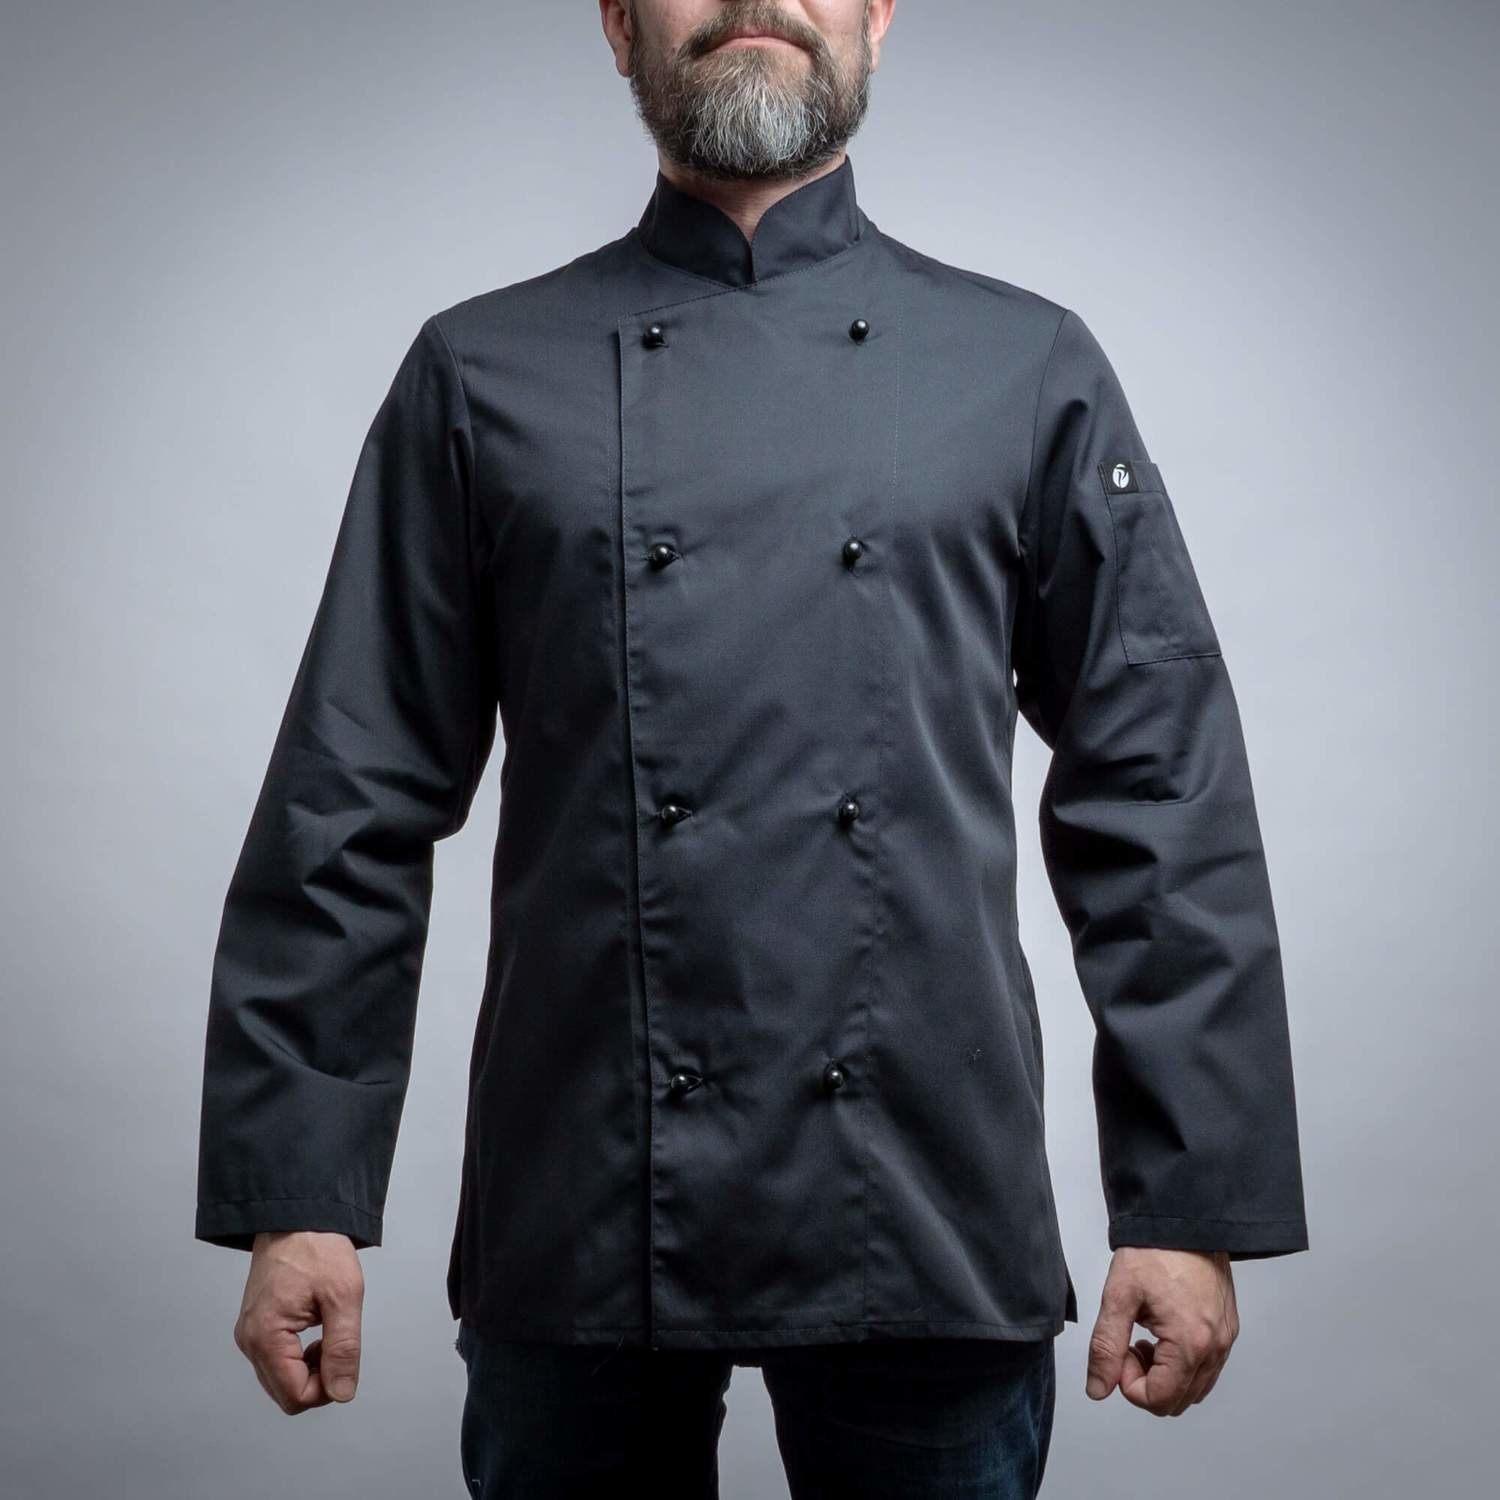 101OVERSIZE.B - MENS CHEF JACKET